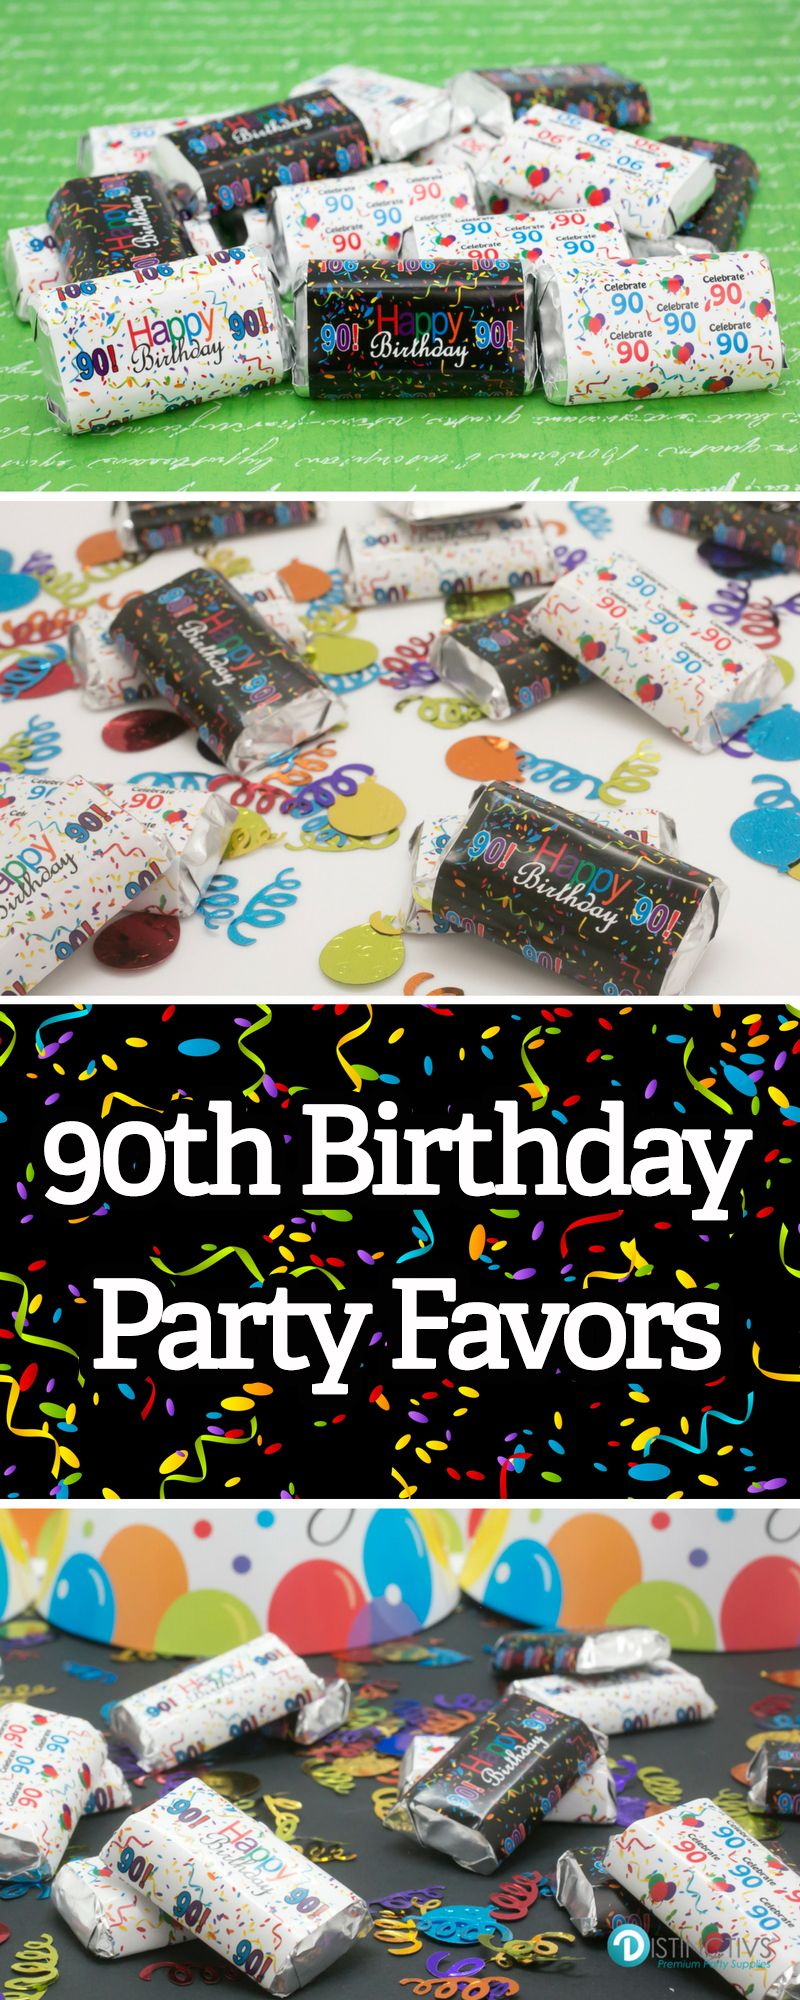 17 Best images about 90th birthday on Pinterest Birthdays Dollar